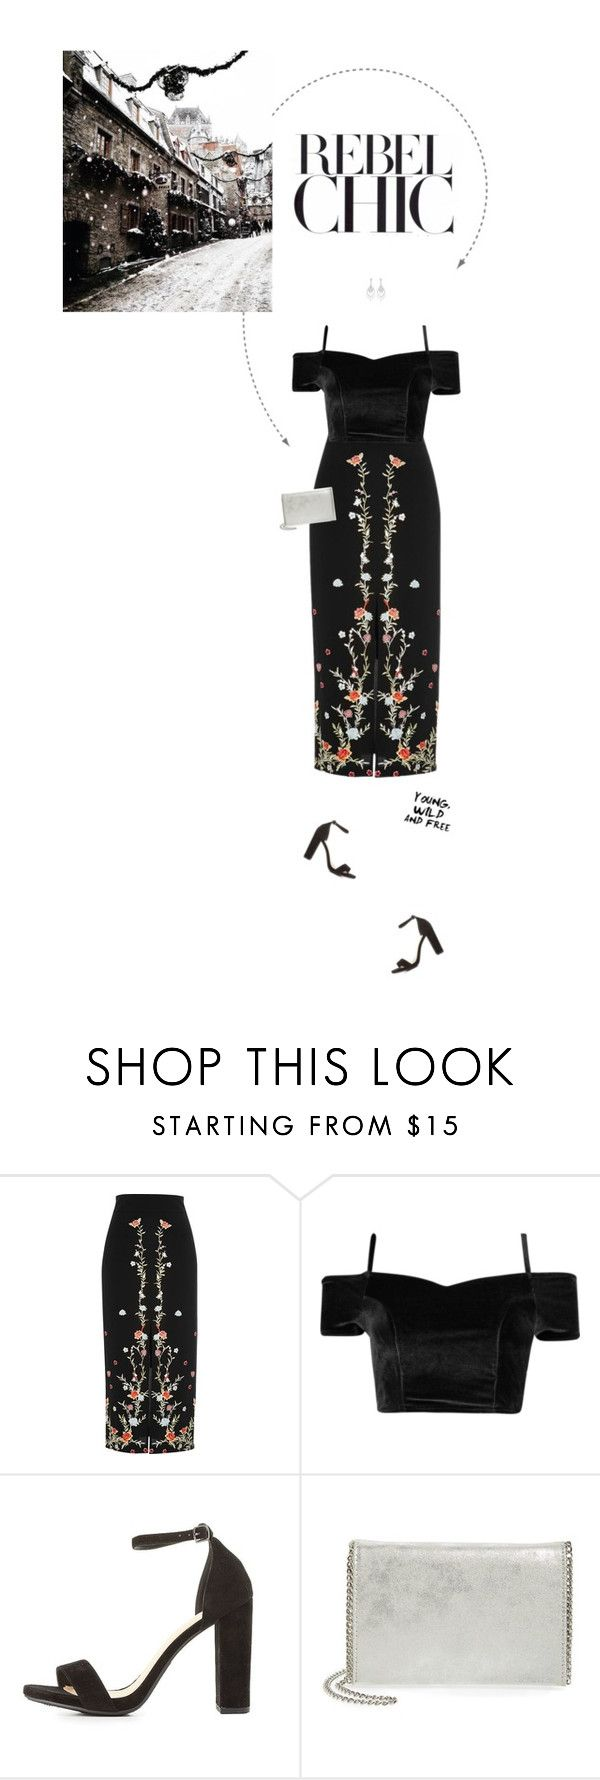 """""""Black, Red & Silver Outfit."""" by xabbielou ❤ liked on Polyvore featuring River Island, Delicious, Chelsea28, Carolee and GET LOST"""